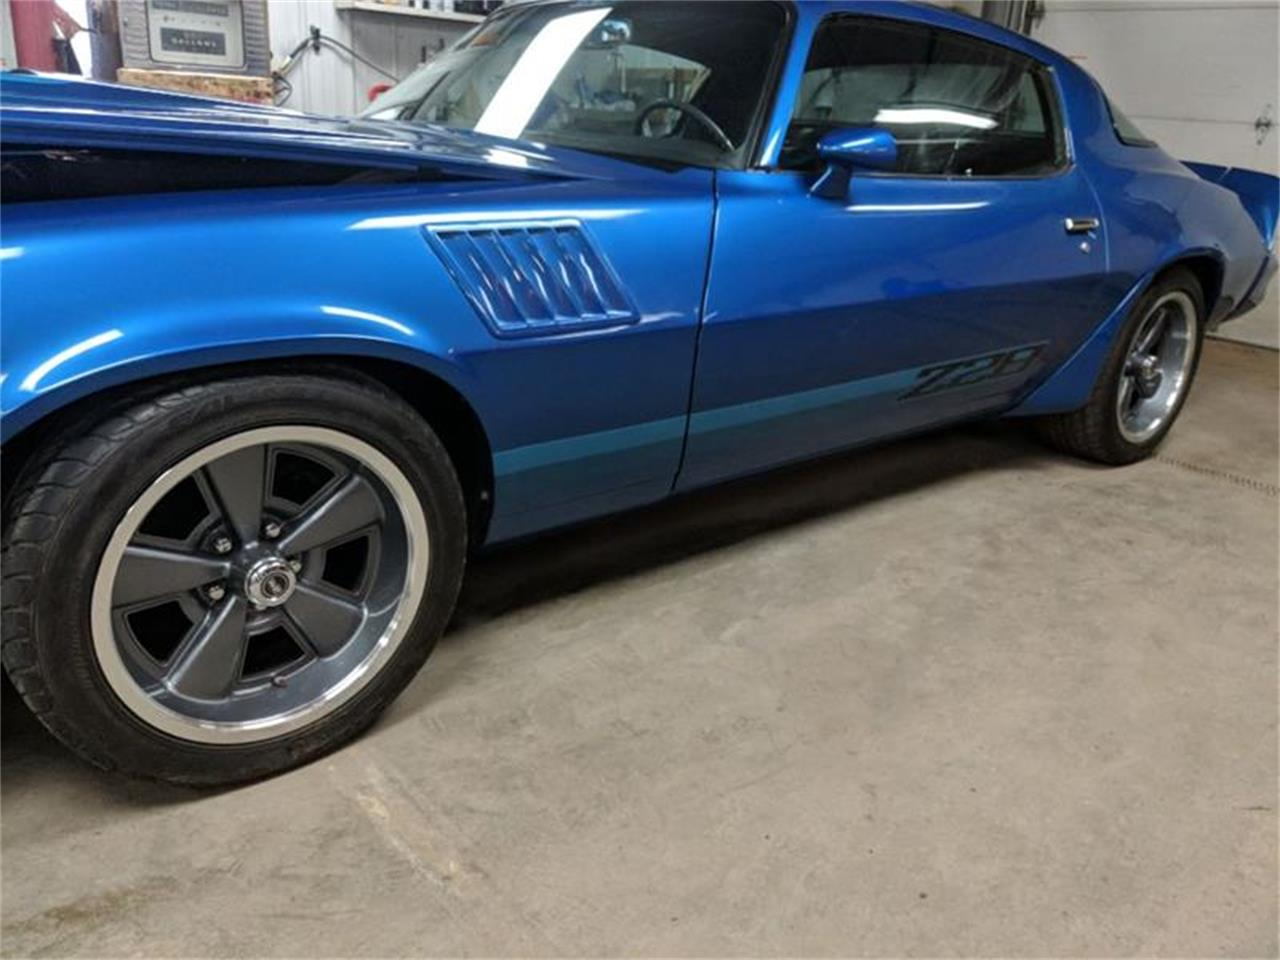 Large Picture of '78 Camaro - $20,995.00 Offered by Cruz'n Motors - PX97